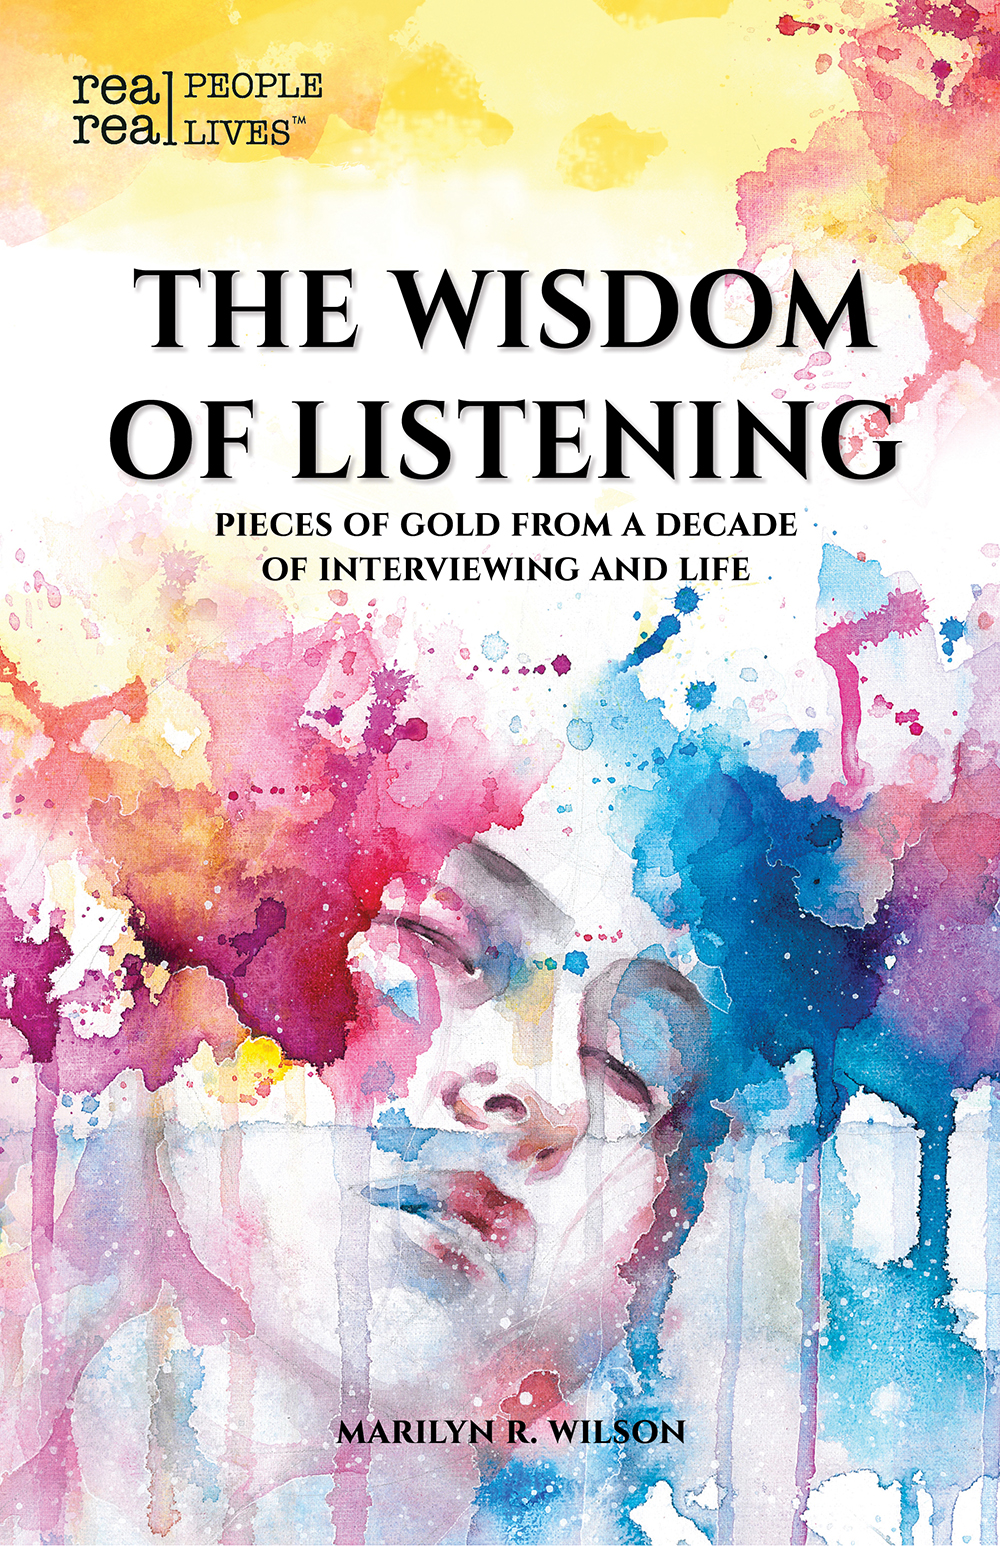 The Wisdom of Listening - Pieces of Gold From a Decade of Interviewing and LifeEveryone has a story to tell...The next time you're out in public, take a moment to look around you. Each and every person you see holds wisdom in their pockets--pieces of gold they've accumulated as they walked their own unique life journey.Within these pages, Marilyn shares some of the many pieces of gold she has received over her decade-long career. They have been offered to her during interviews, through random encounters and while facing difficult challenges. The most important? We are each unique and exactly who we are meant to be.Are you ready to dig for gold? All you need to do is be brave, be present in the moment and be open to the possibilities--then start a conversation.Available in Canada at Amazon.caAvailable in the US at Amazon.com and Barnes&NobleInternationally - check your closest Amazon site.